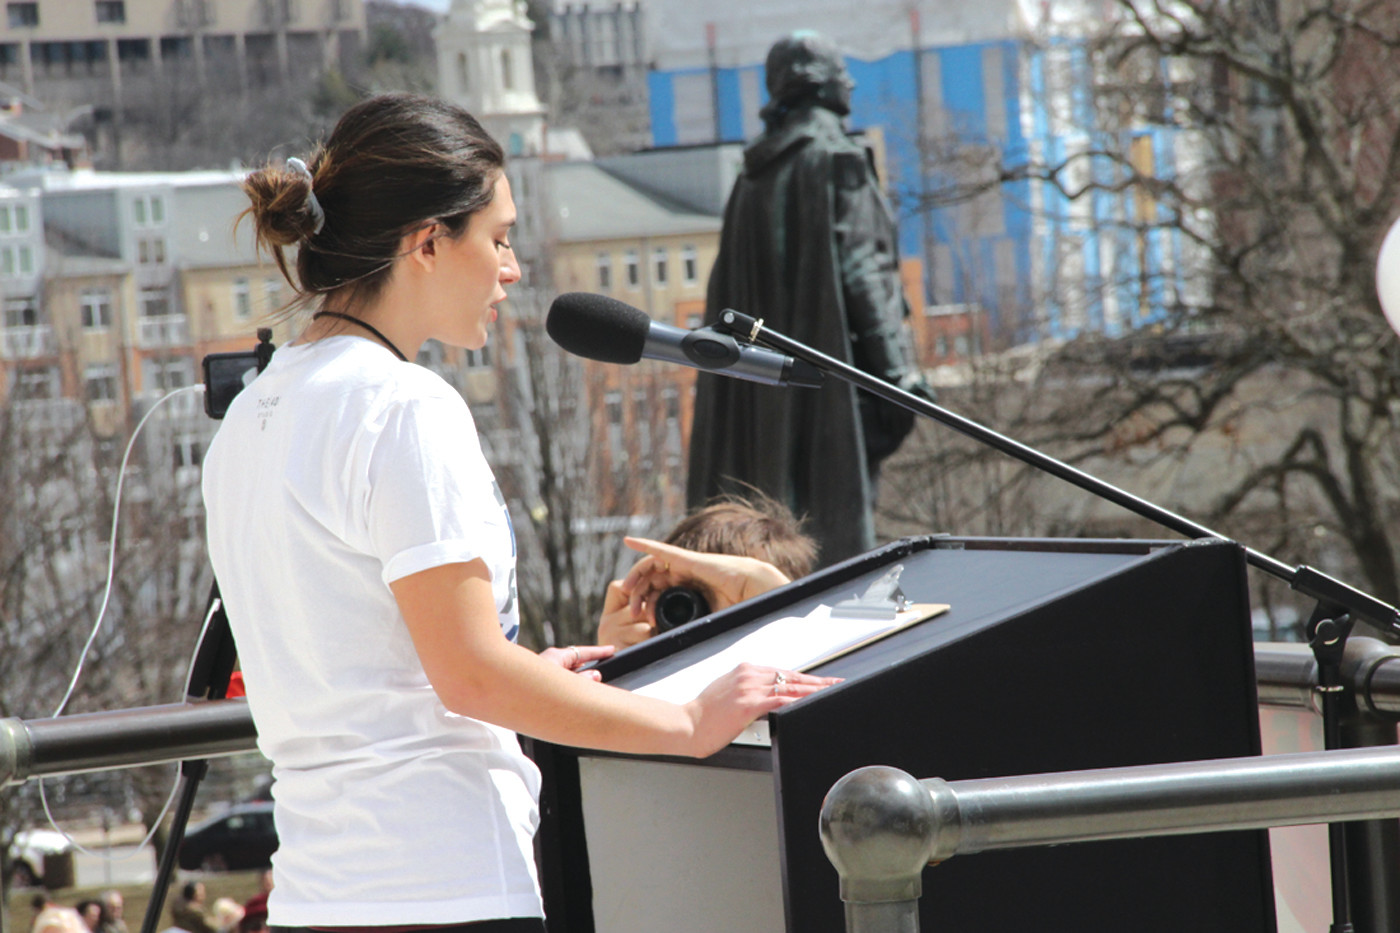 MAKING IT HAPPEN: Sophia Capalbo, a junior at Johnson & Wales University, organized the march.